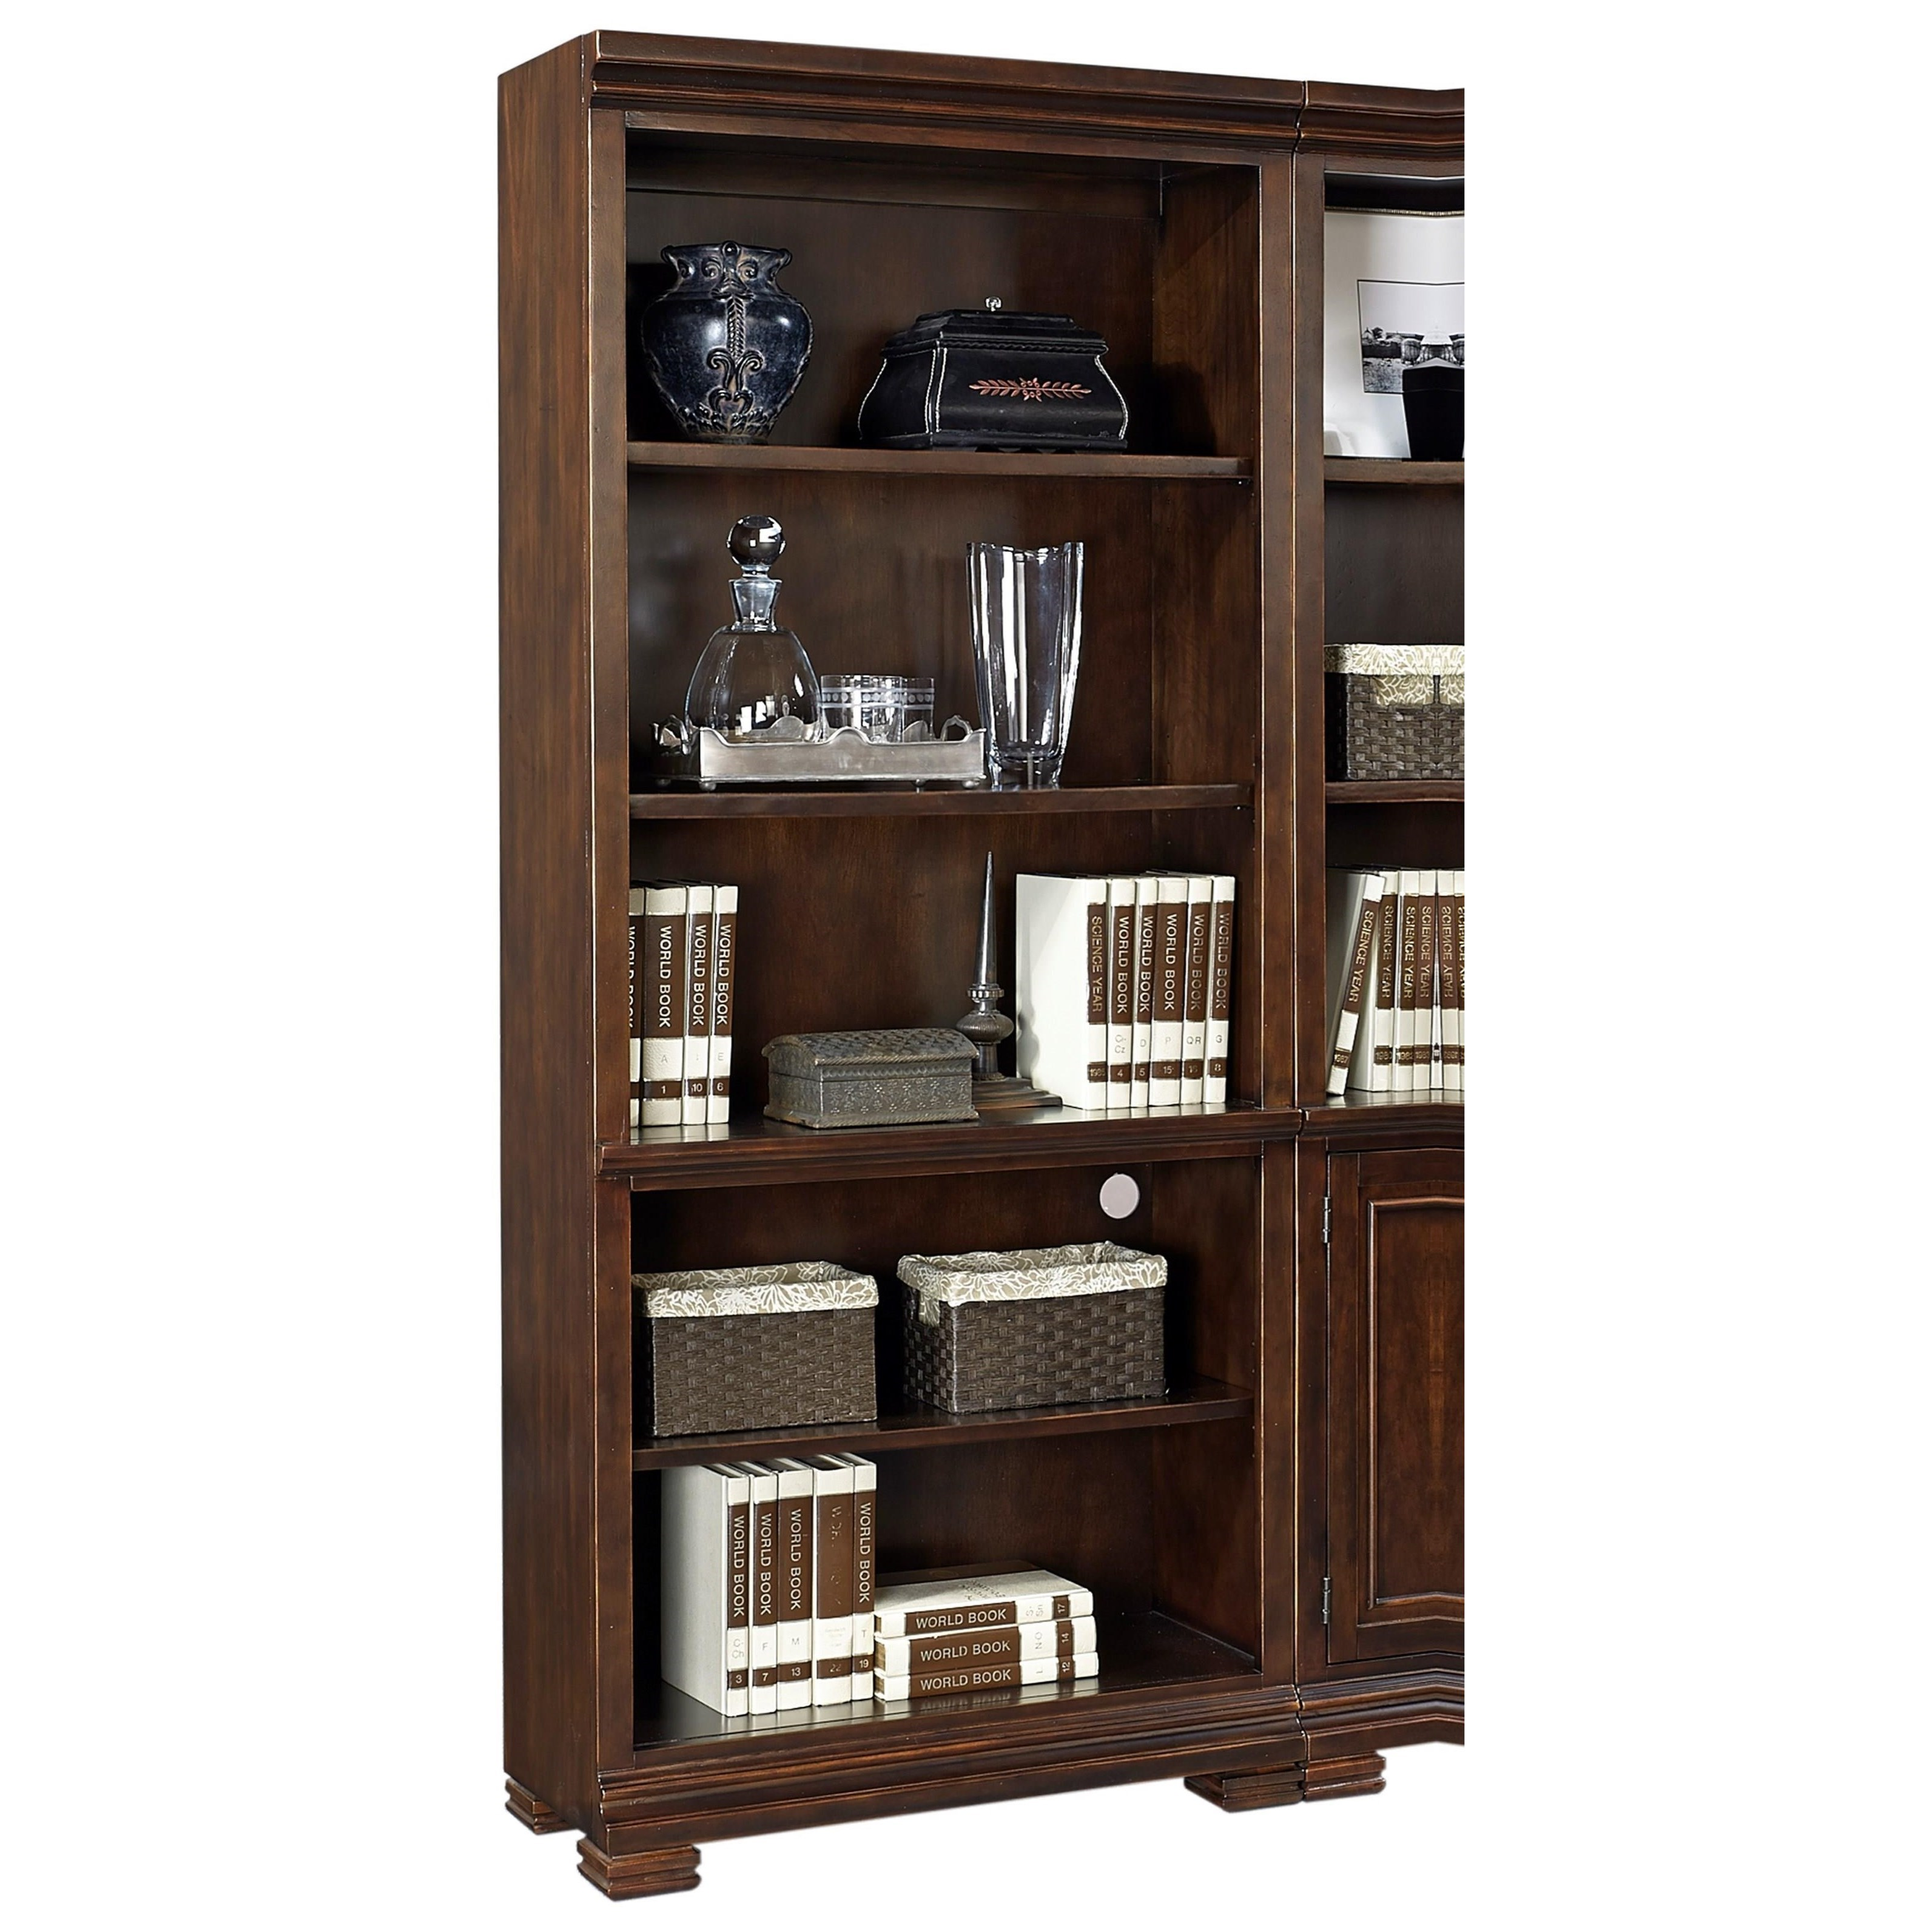 Aspenhome Weston Open Bookcase  - Item Number: I35-333